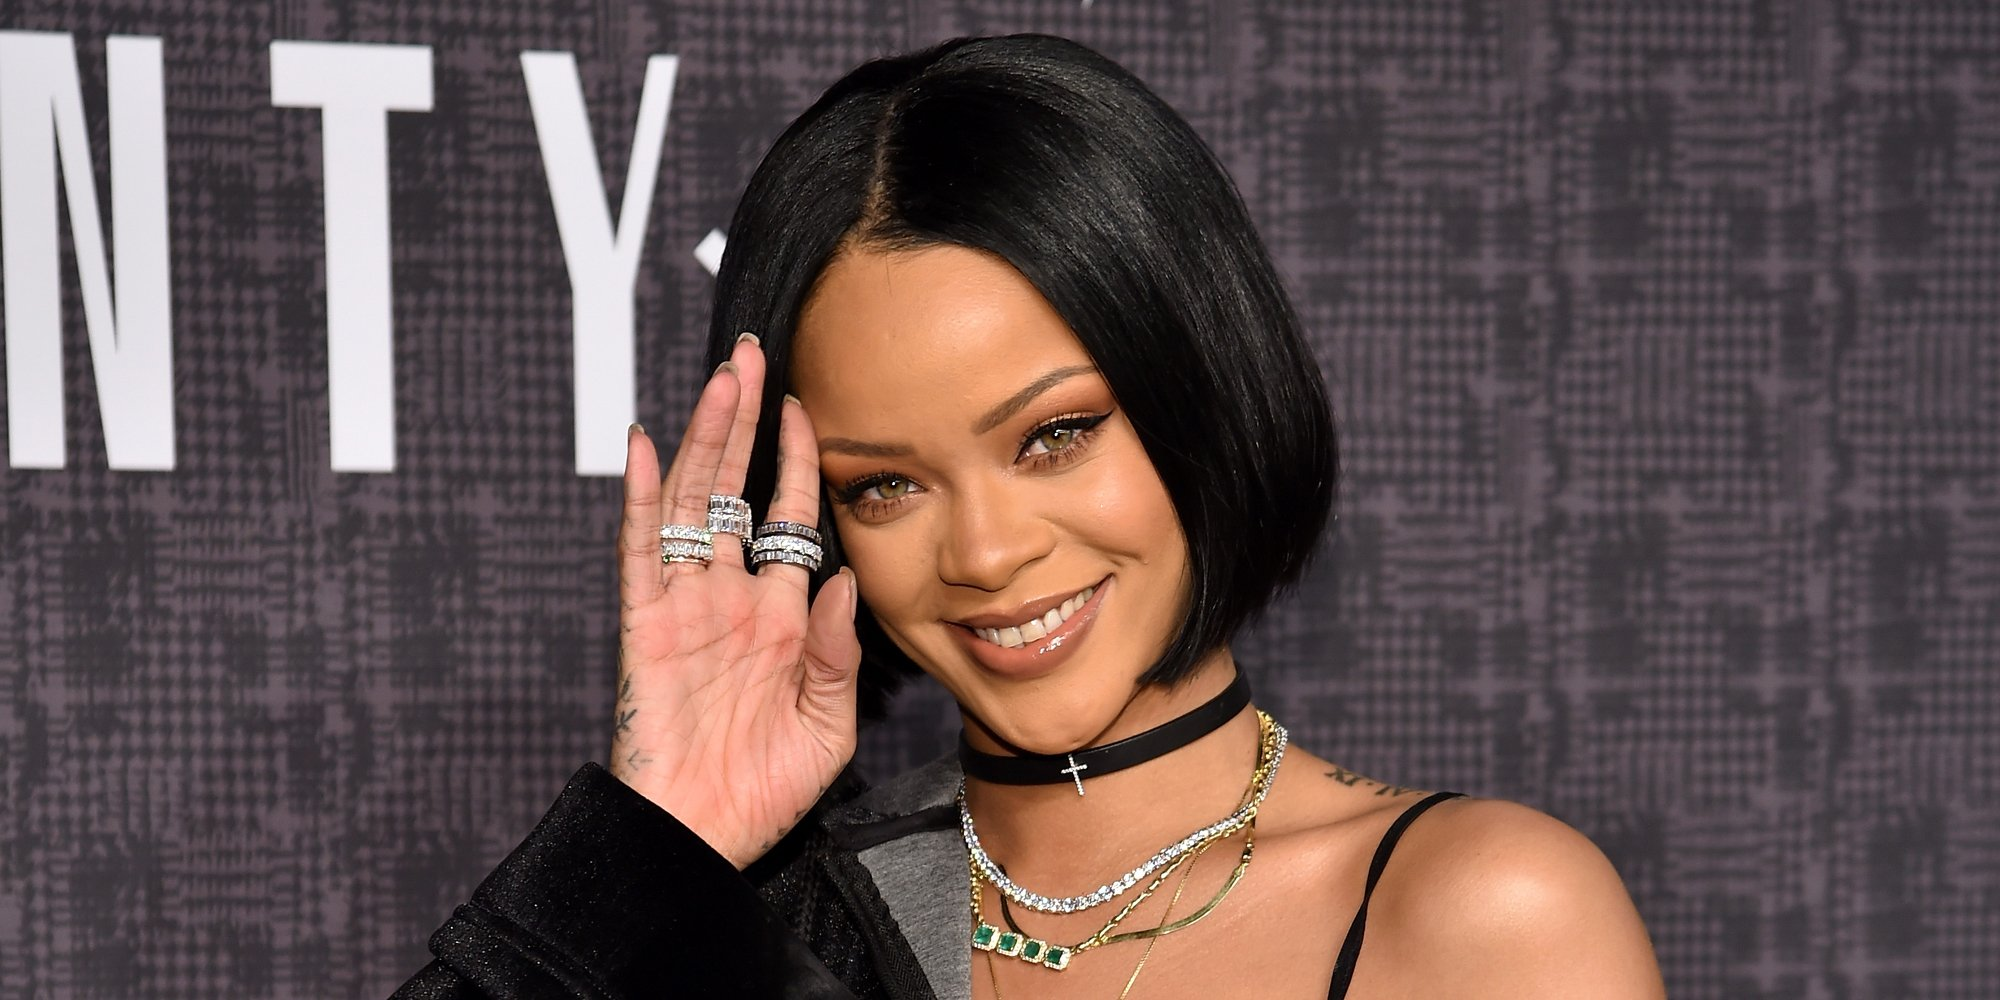 Rihanna Just Announced Her New Acting Role and It's SO Major: https://t.co/pgqiAV6rD1 https://t.co/Qv5QawHzQe